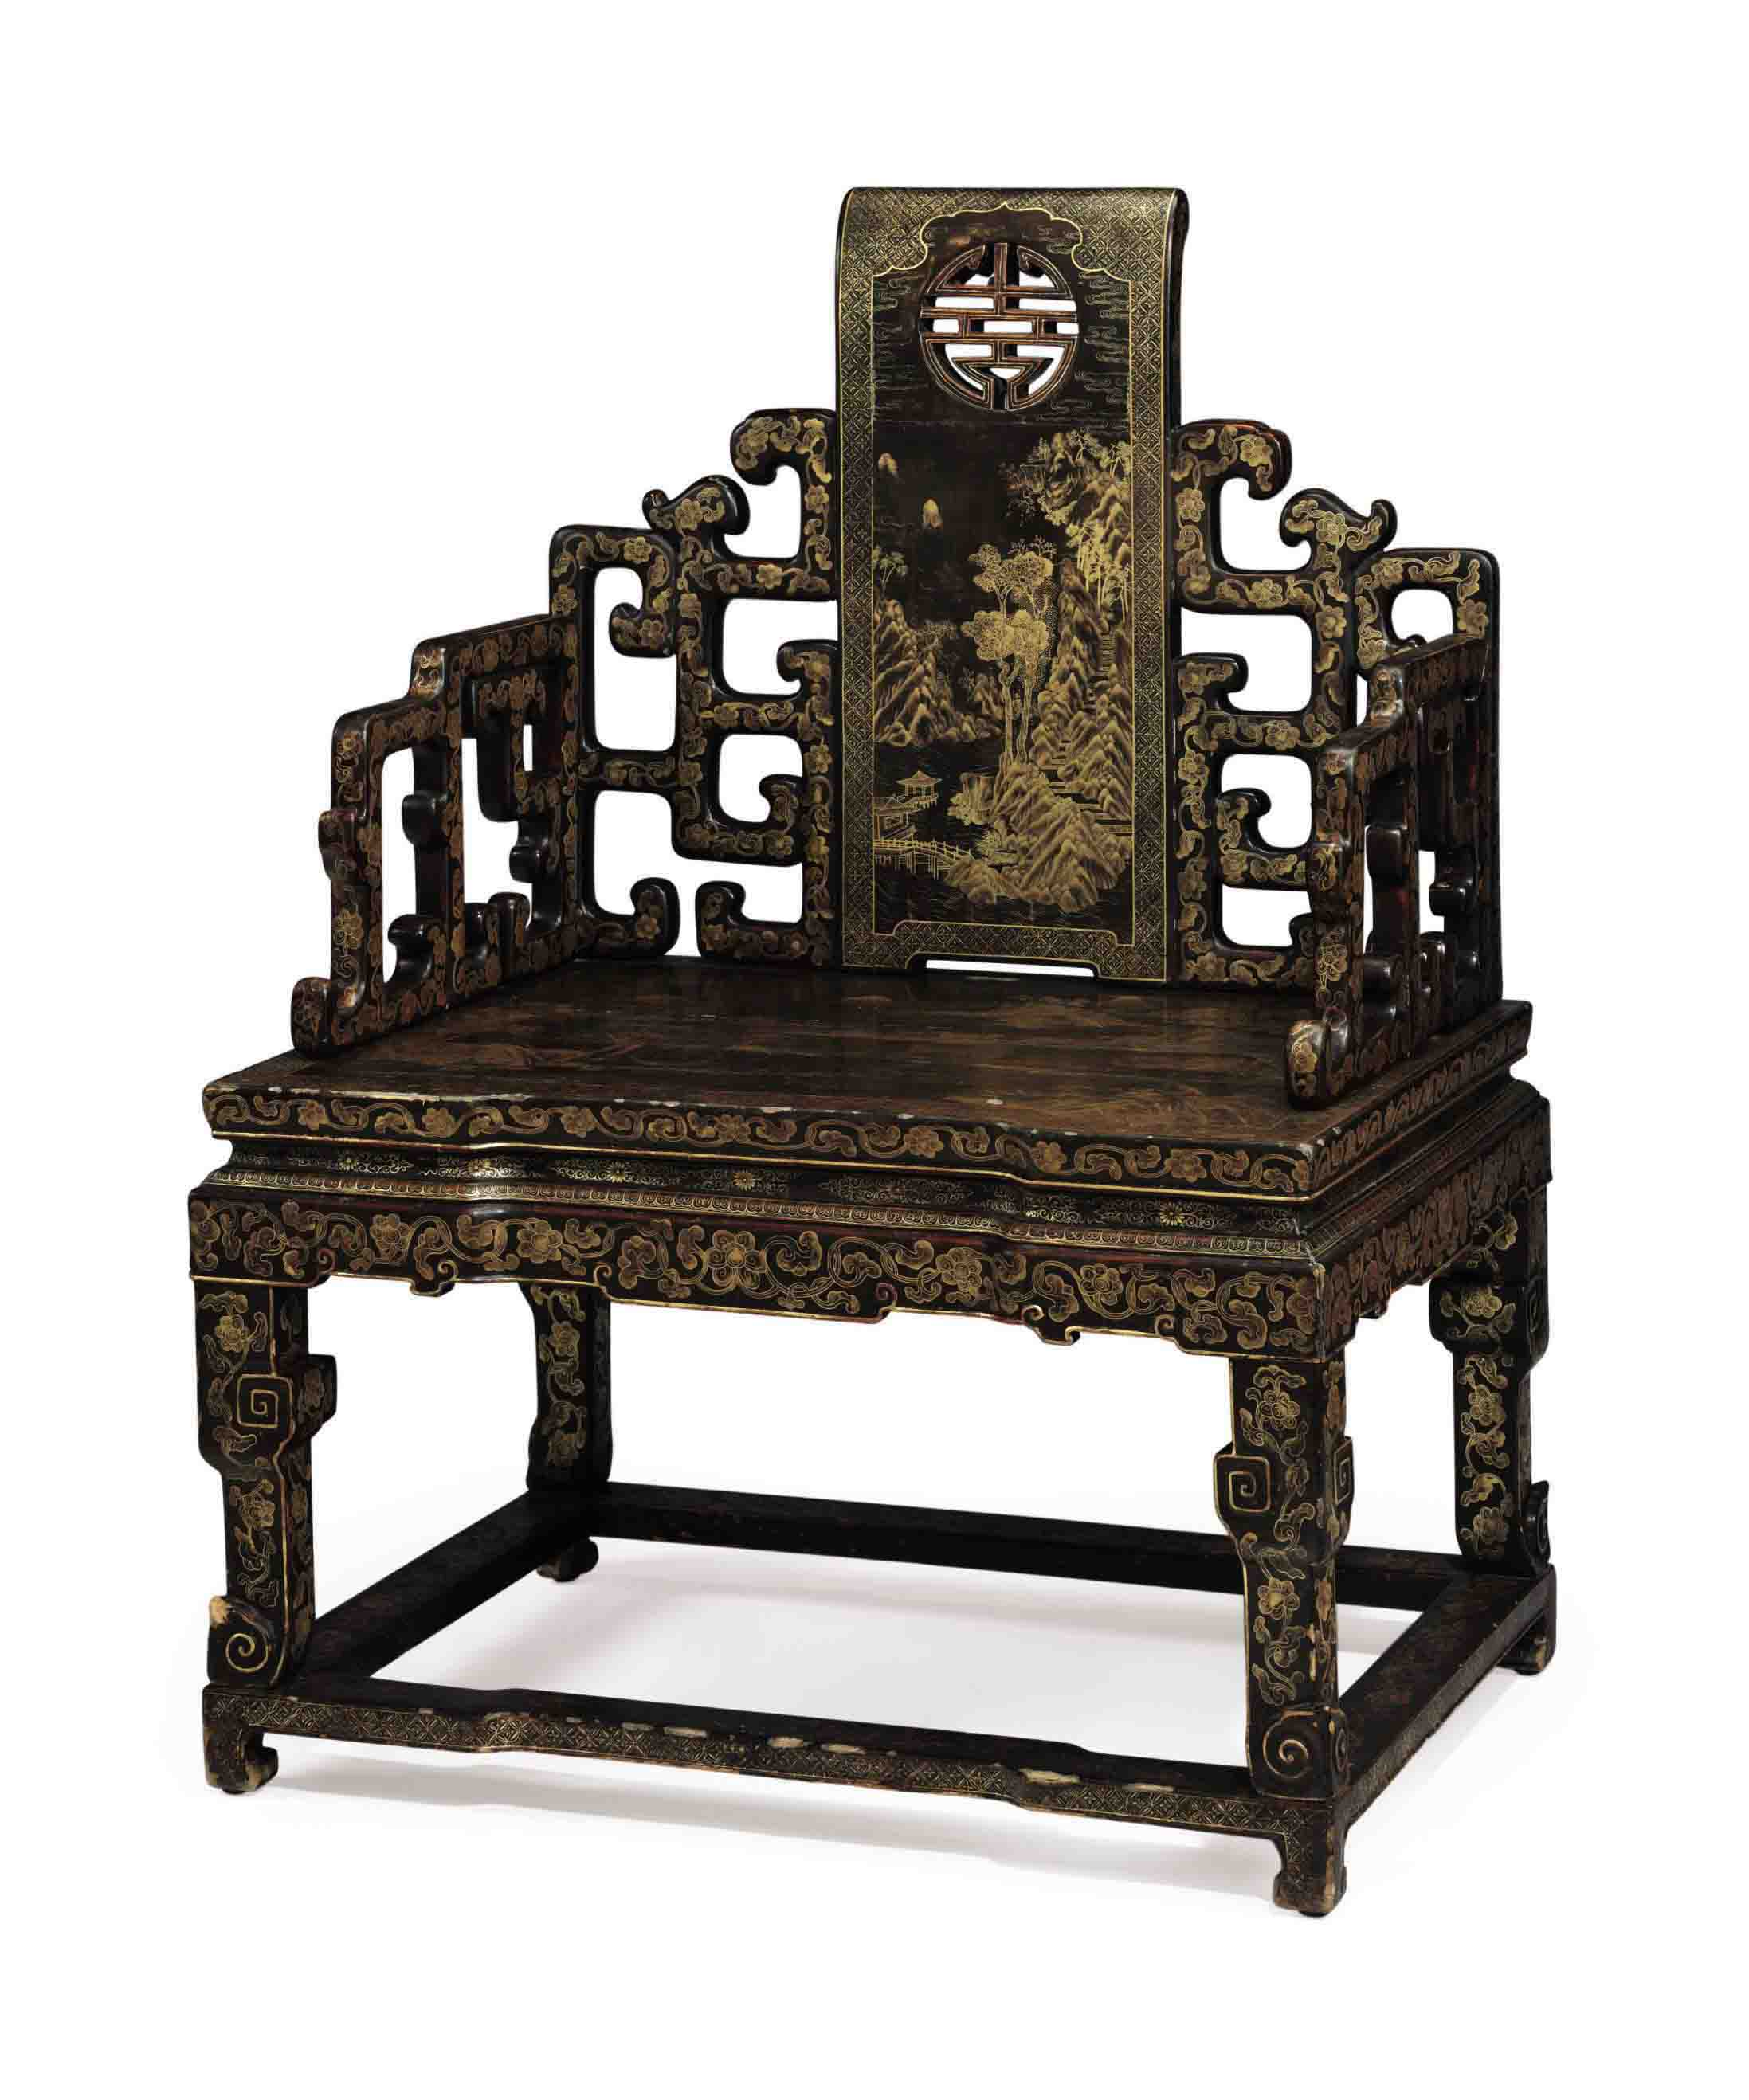 black throne chair office mat for high pile carpet a rare gilt decorated lacquered softwood